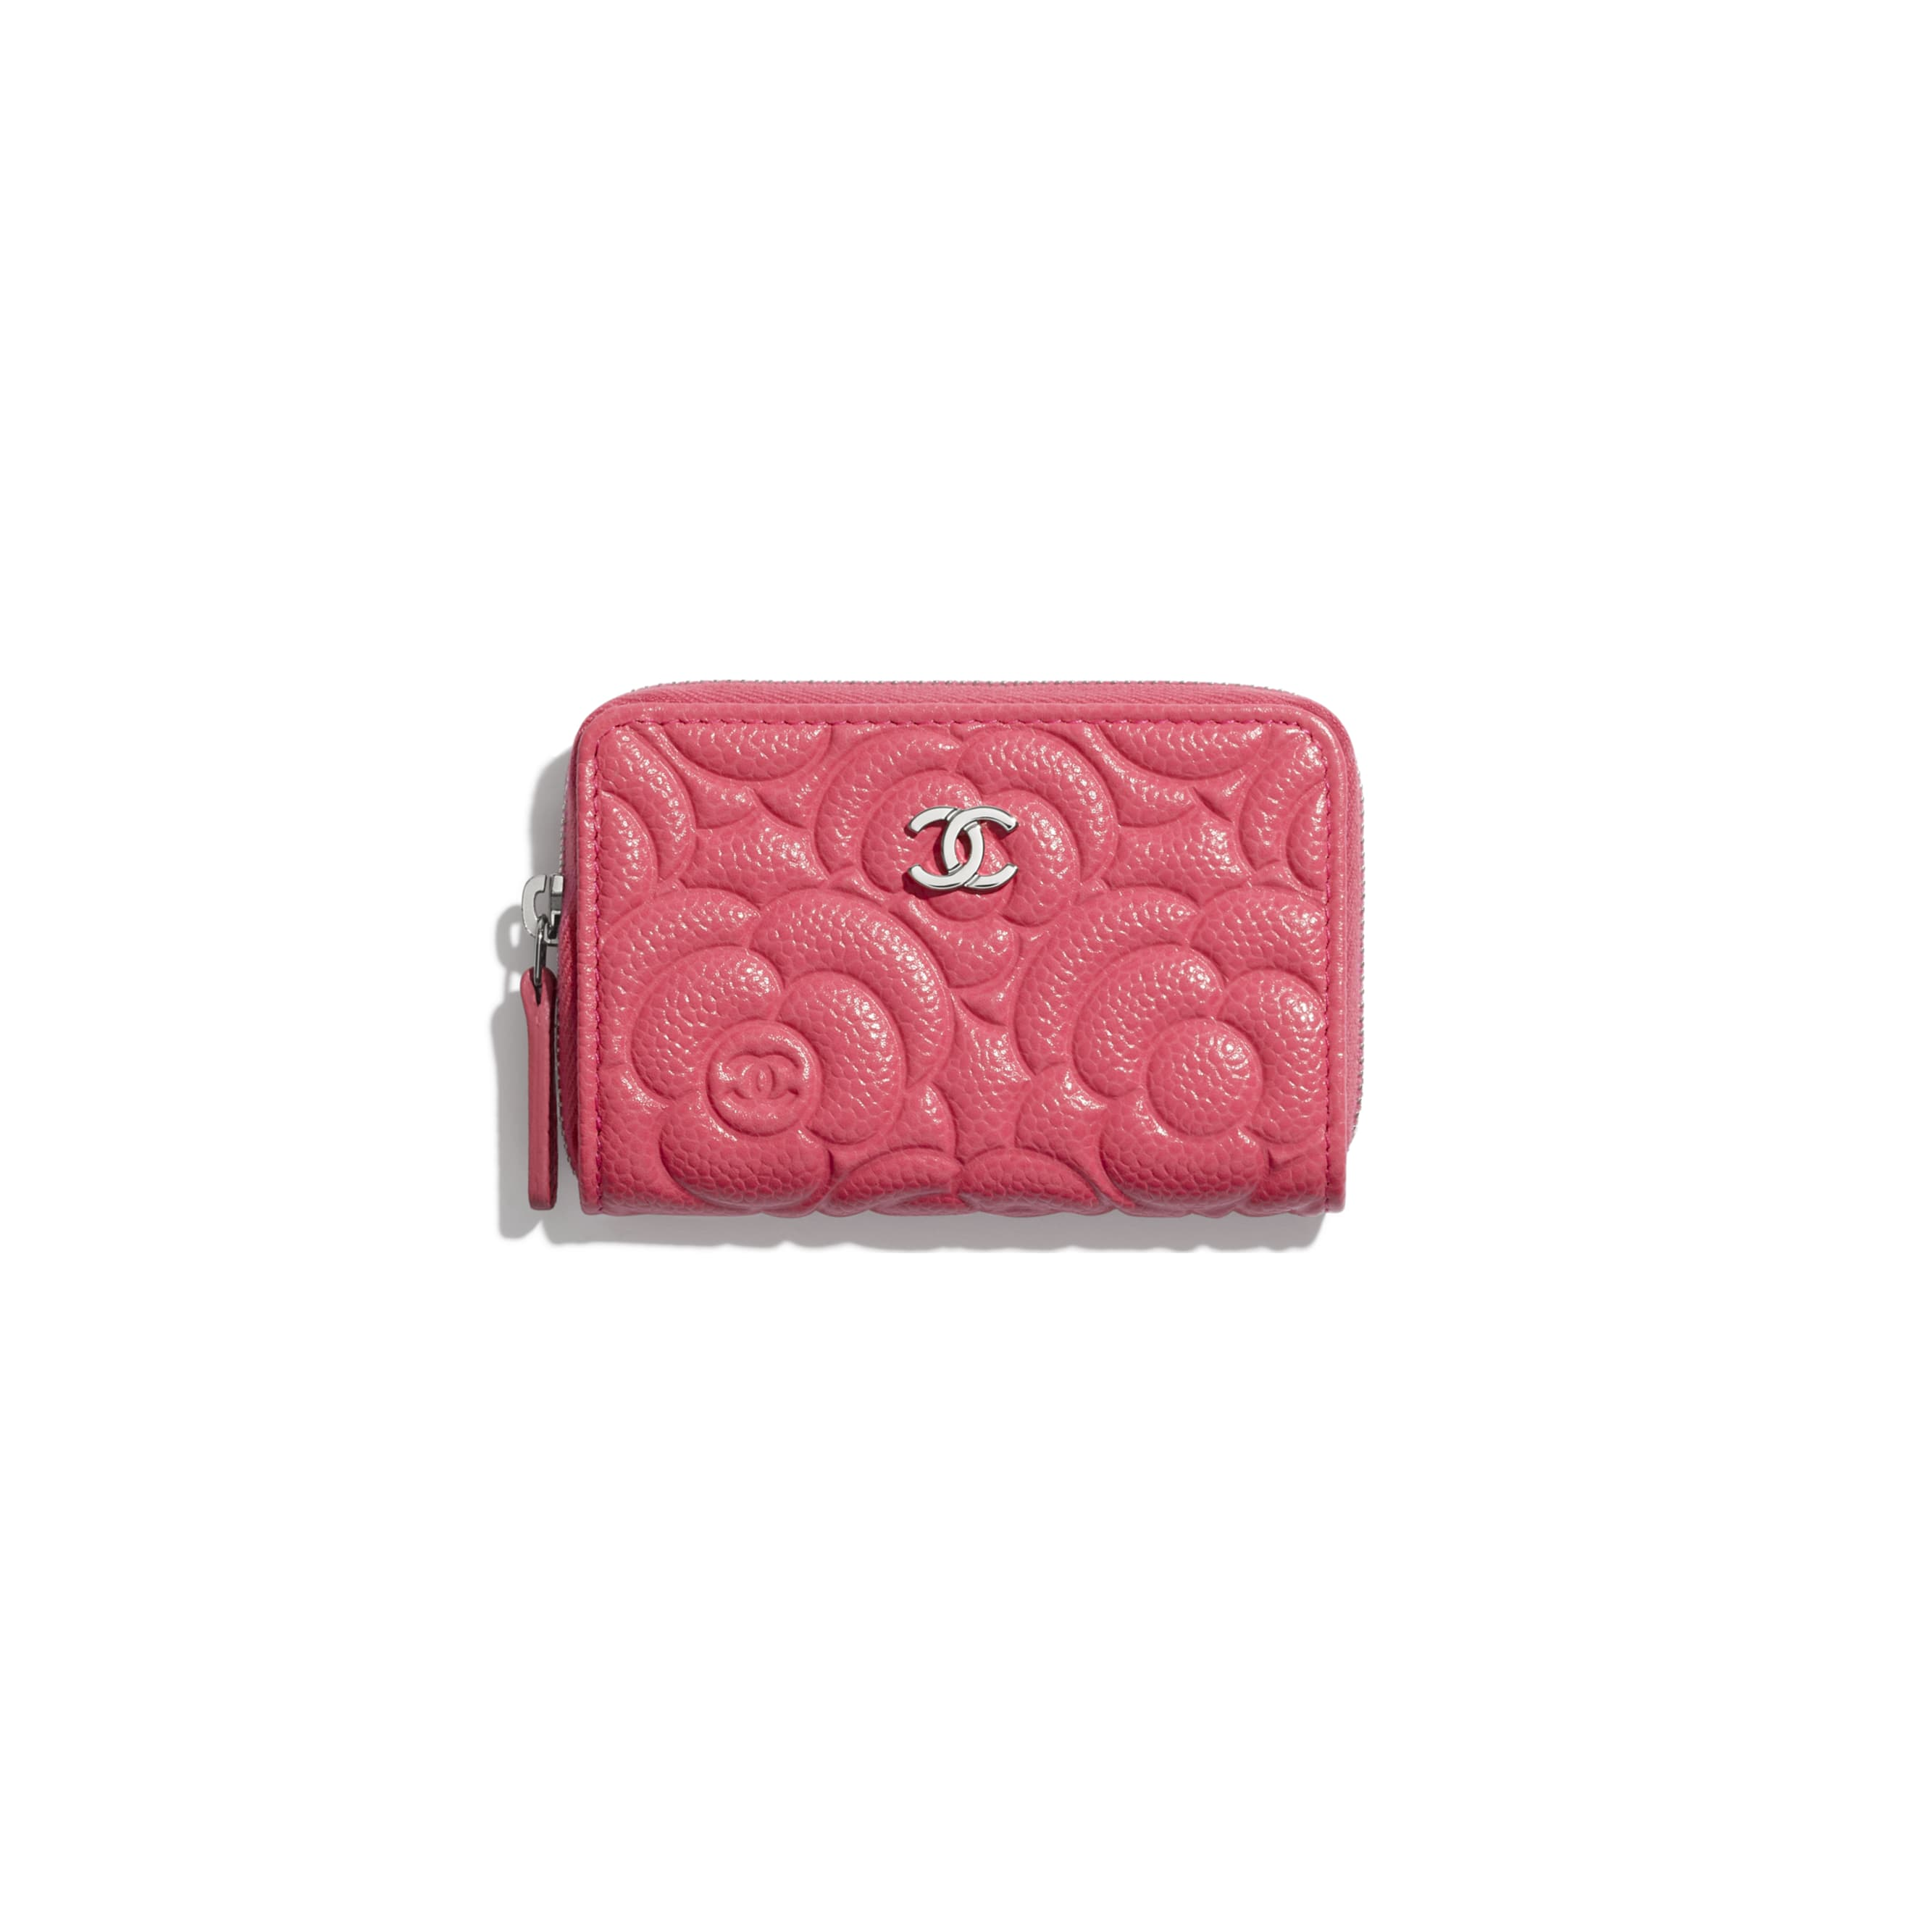 Zipped Coin Purse - Pink - Grained Calfskin & Silver Metal - CHANEL - Default view - see standard sized version